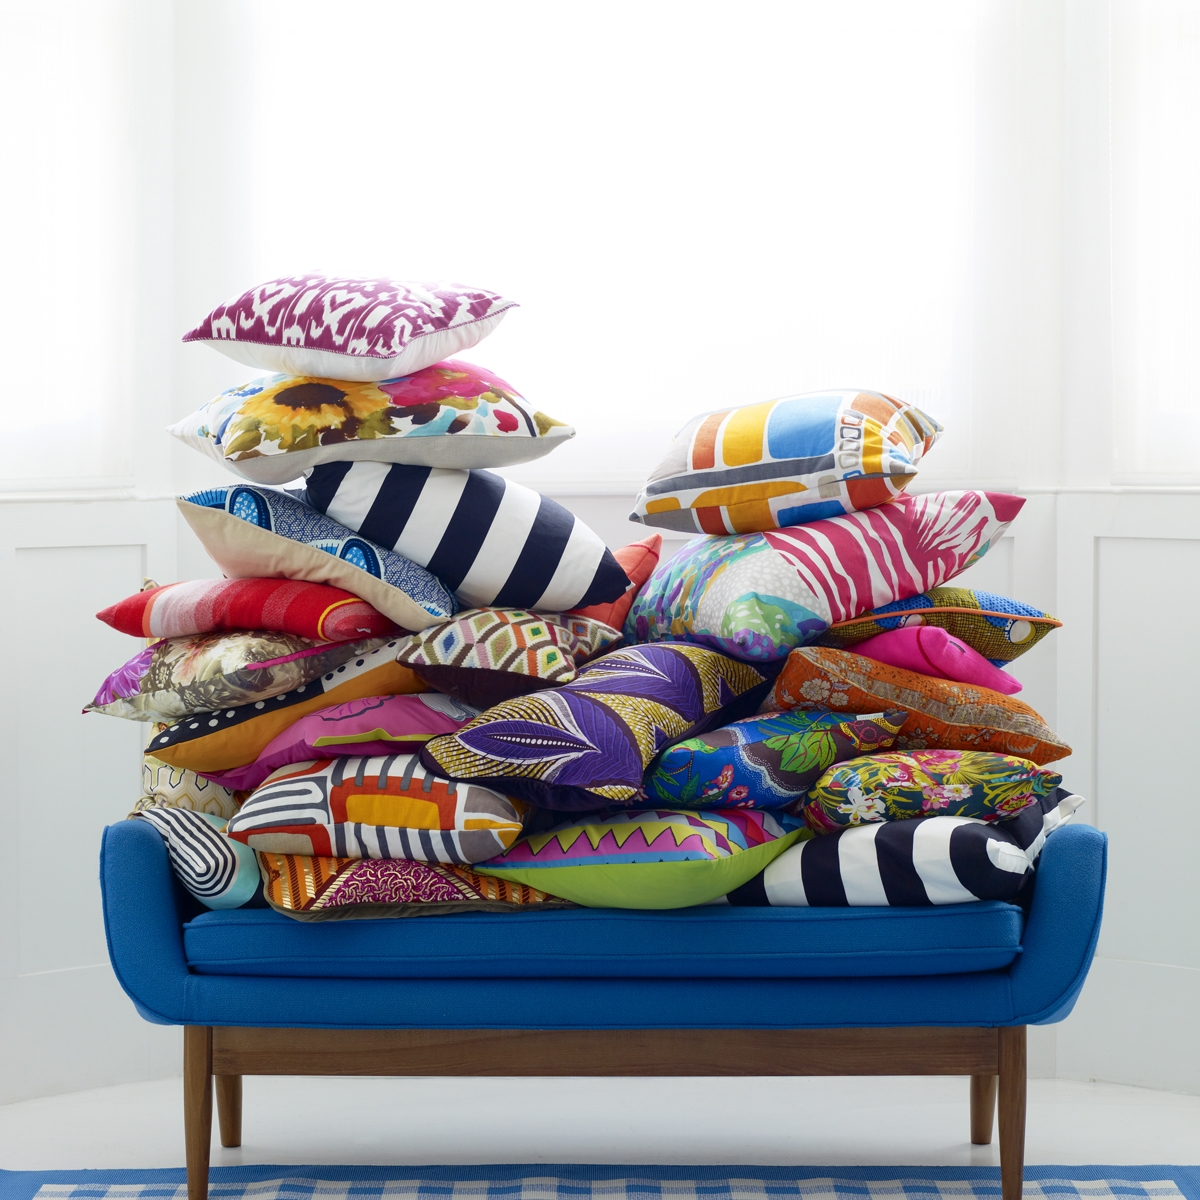 Blue sofa with a pile of pattern clash fabric cushions. Image styled by Mary Norden